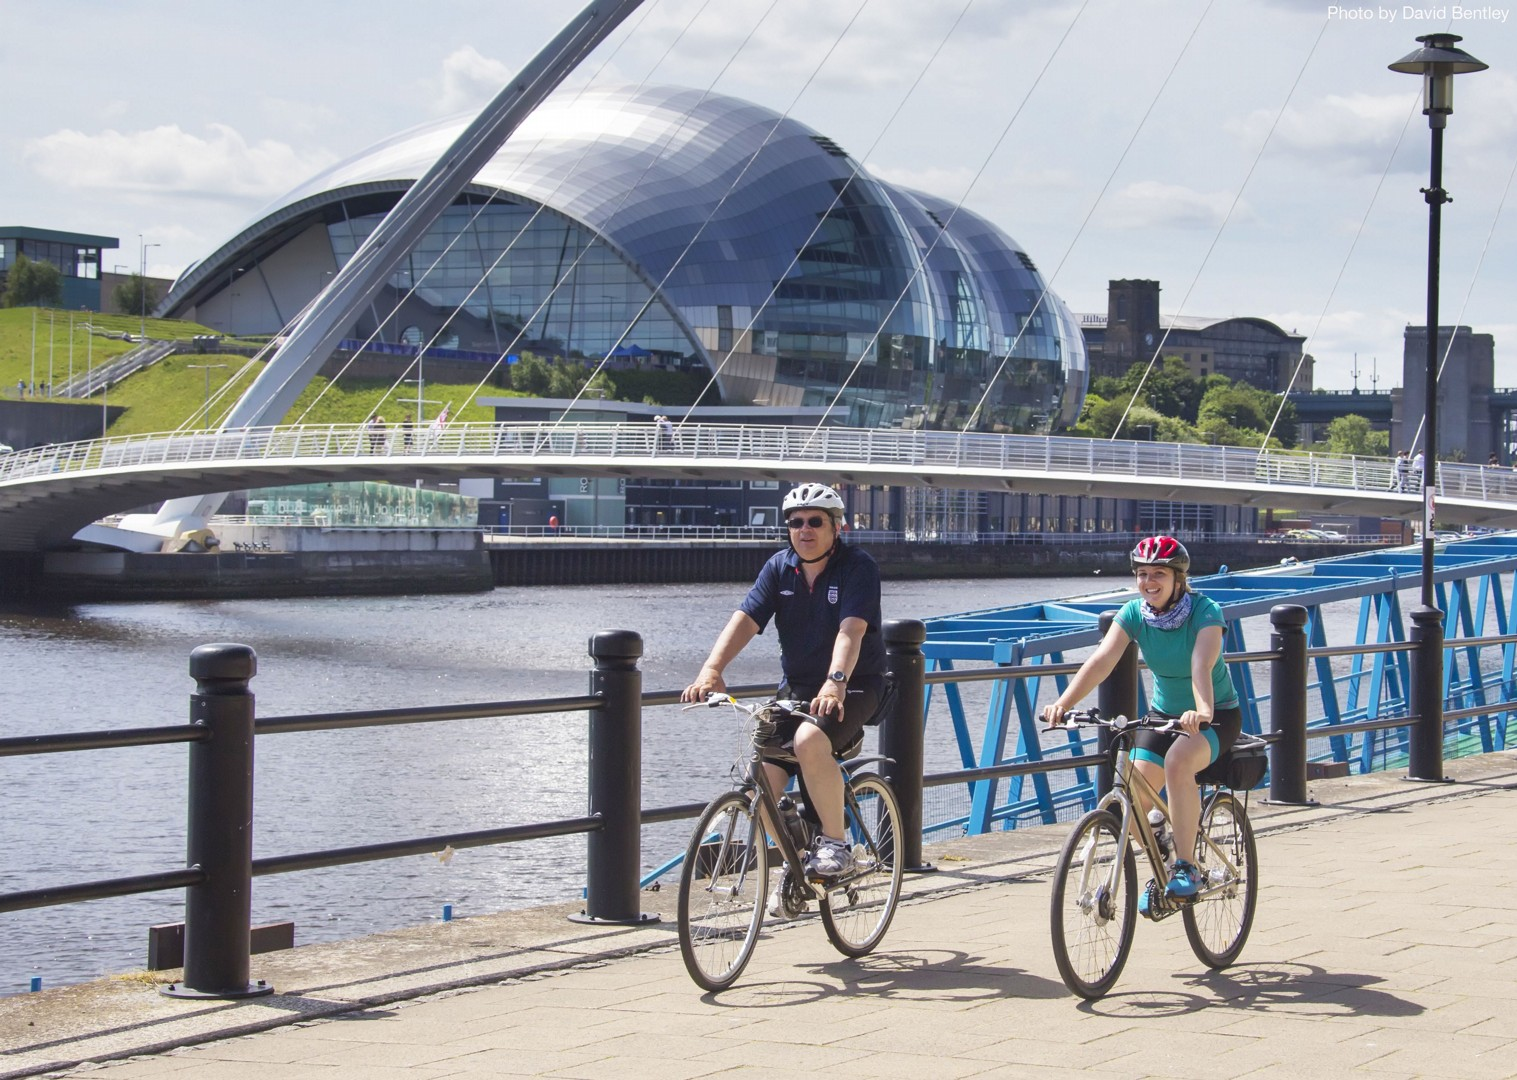 Self-Guided-Leisure-Cycling-Holiday-Hadrians-Cycleway-UK-Newcastle.jpg - UK - Hadrian's Cycleway - 4 Days Cycling - Self-Guided Leisure Cycling Holiday - Leisure Cycling